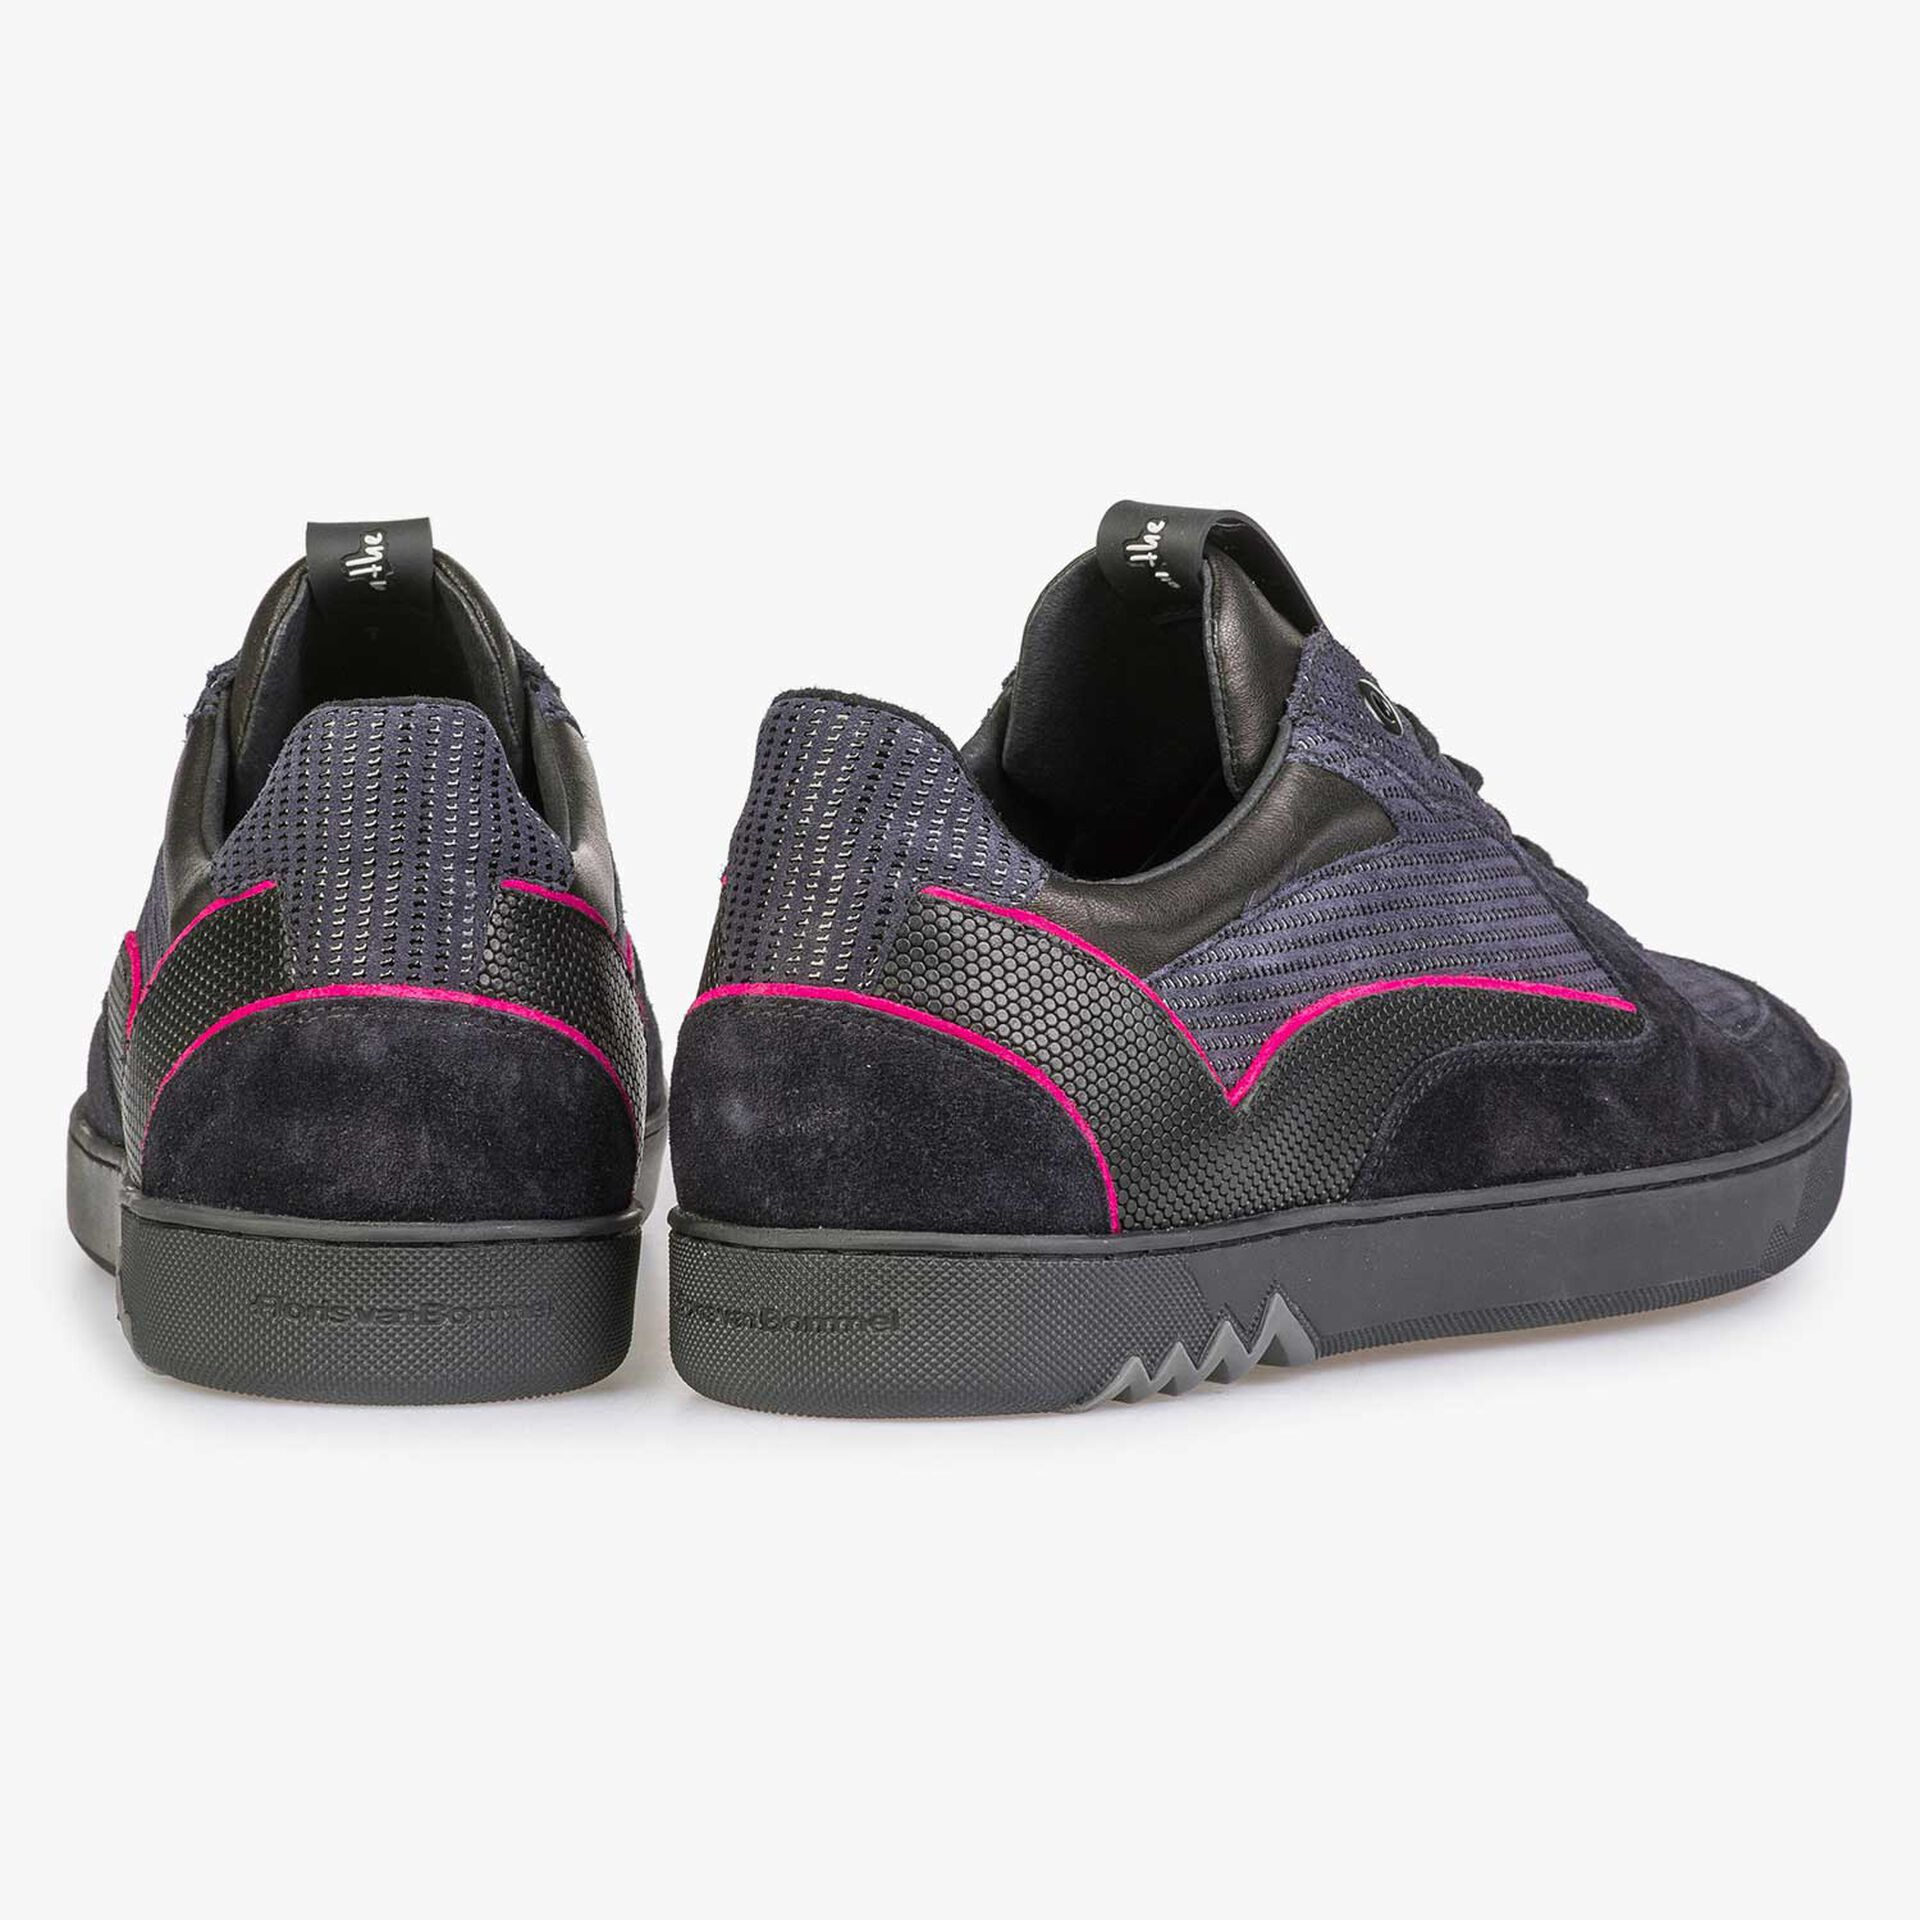 Dark blue sneaker with pink piping